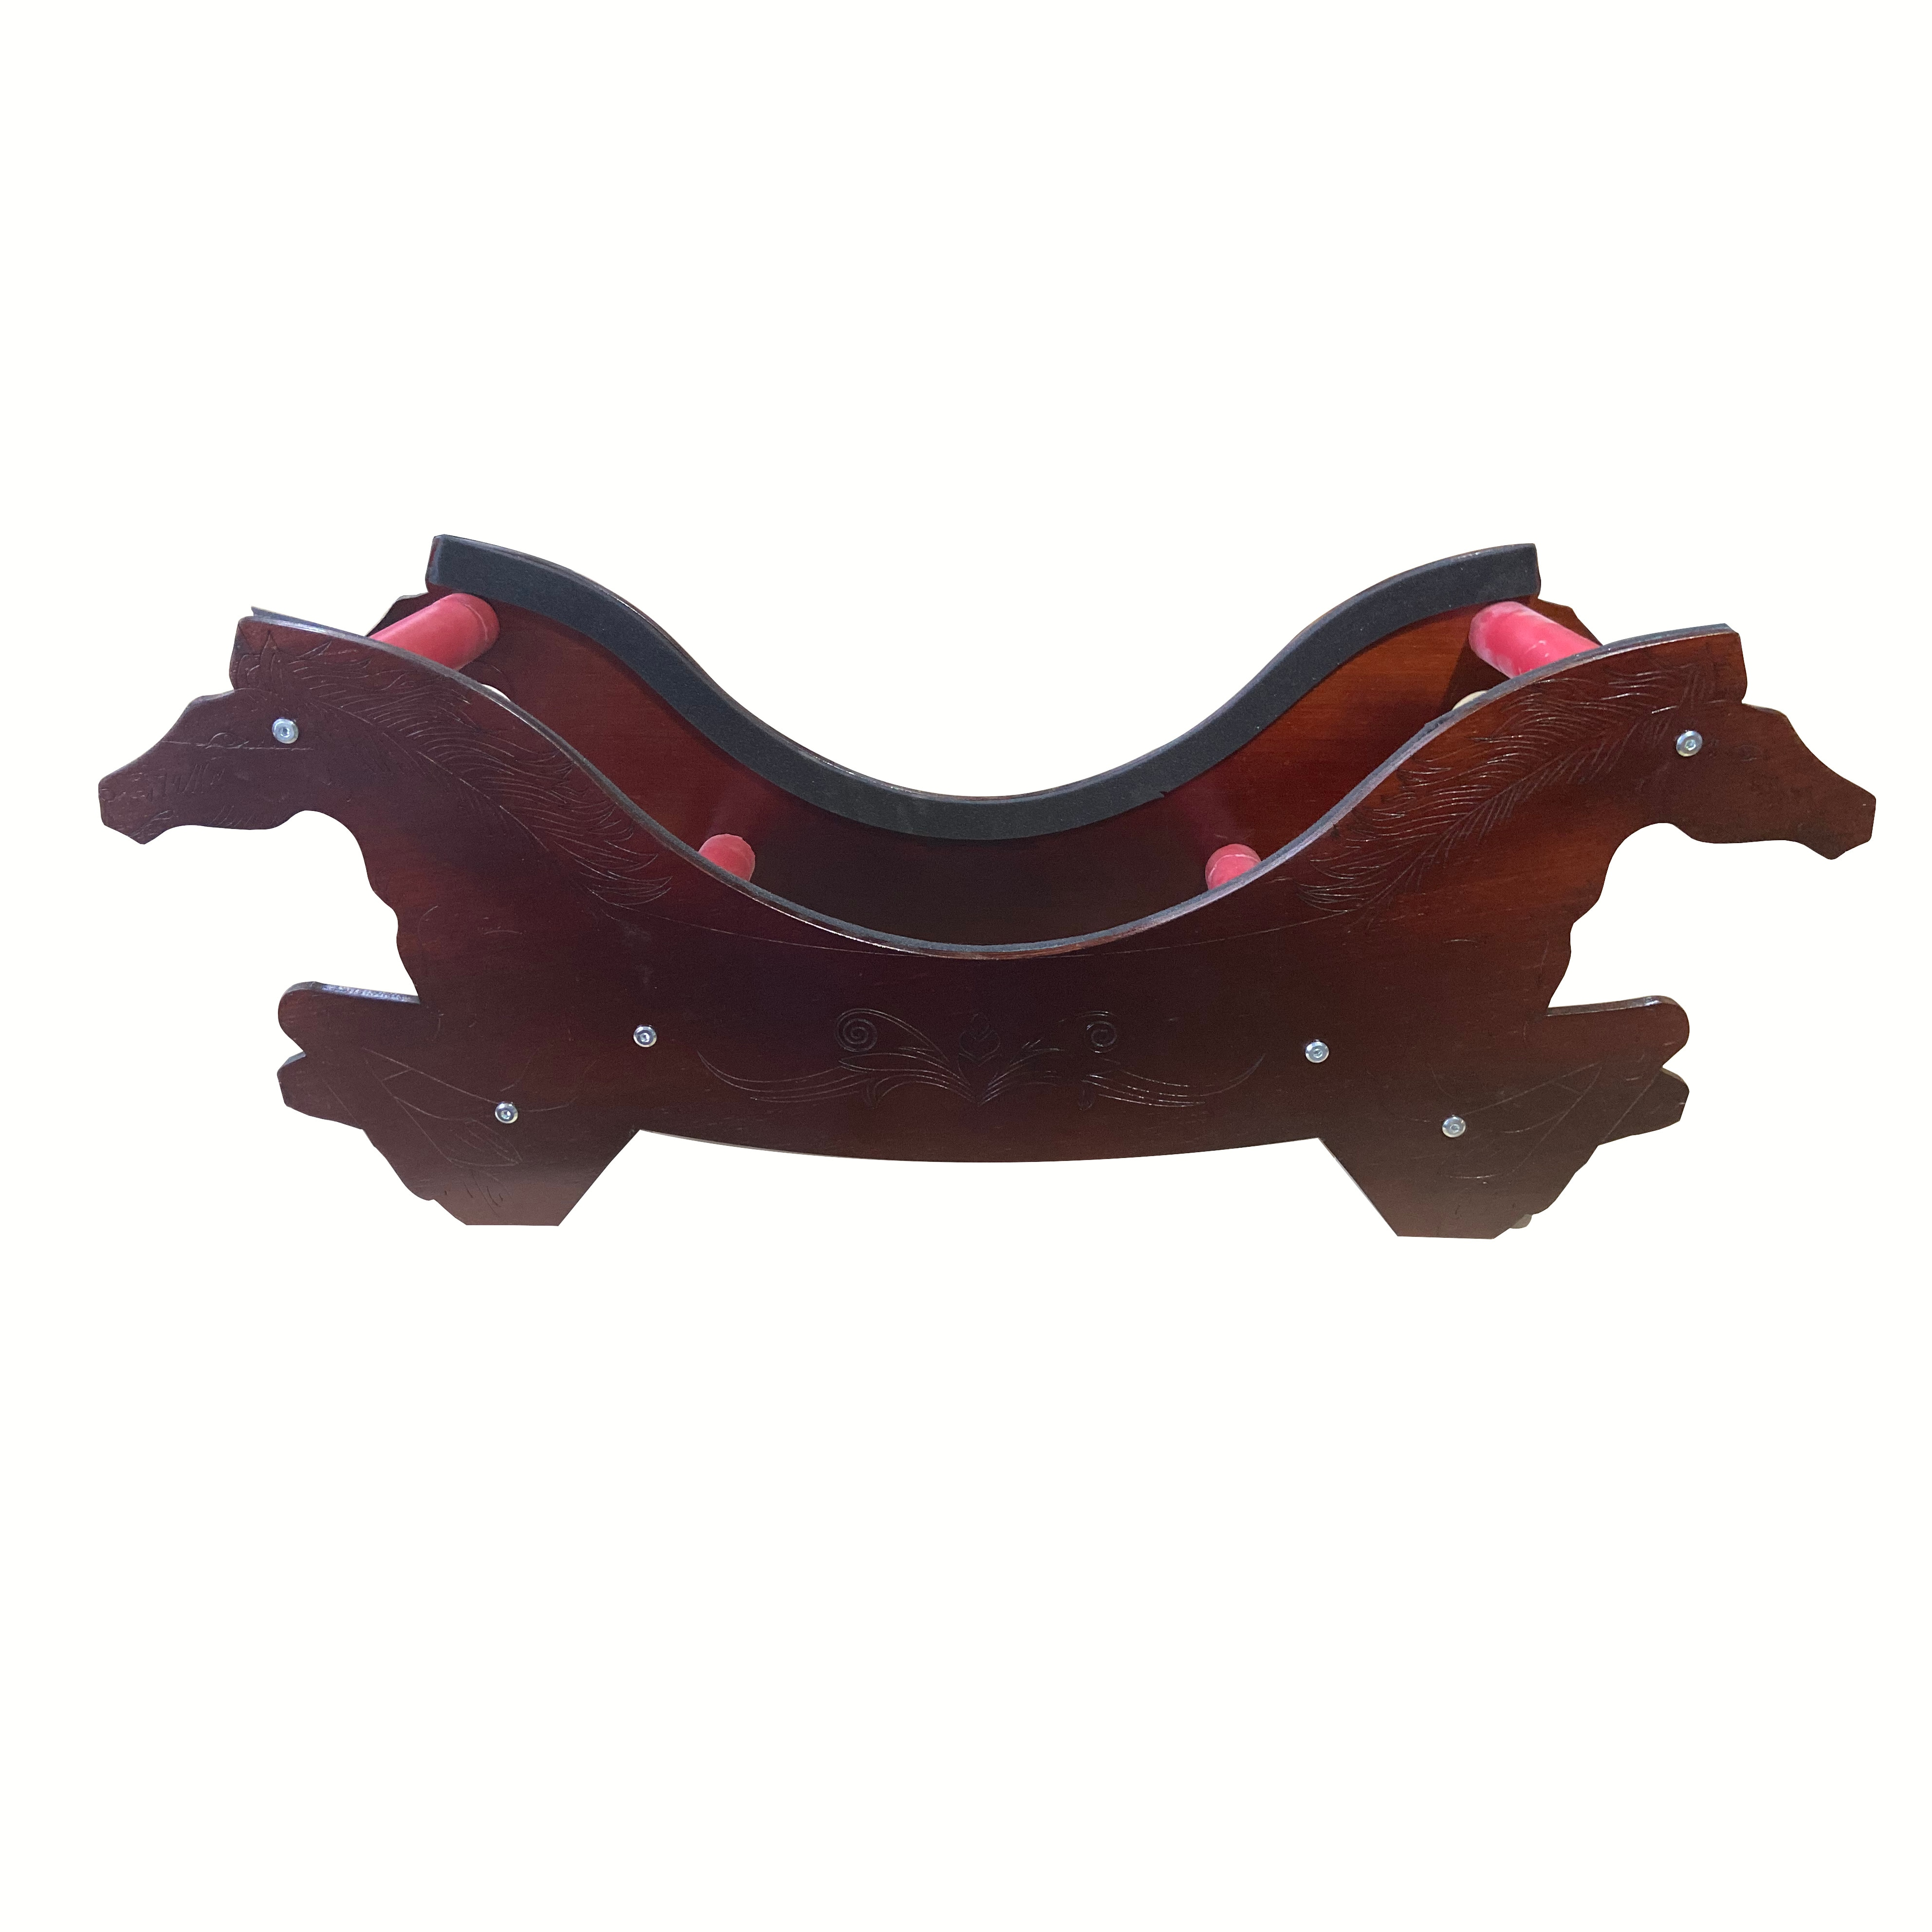 Artist Stand Holder Double Bass Stand Holder Solid Wood Accessories Horse Holder Cello Stand Holder enlarge